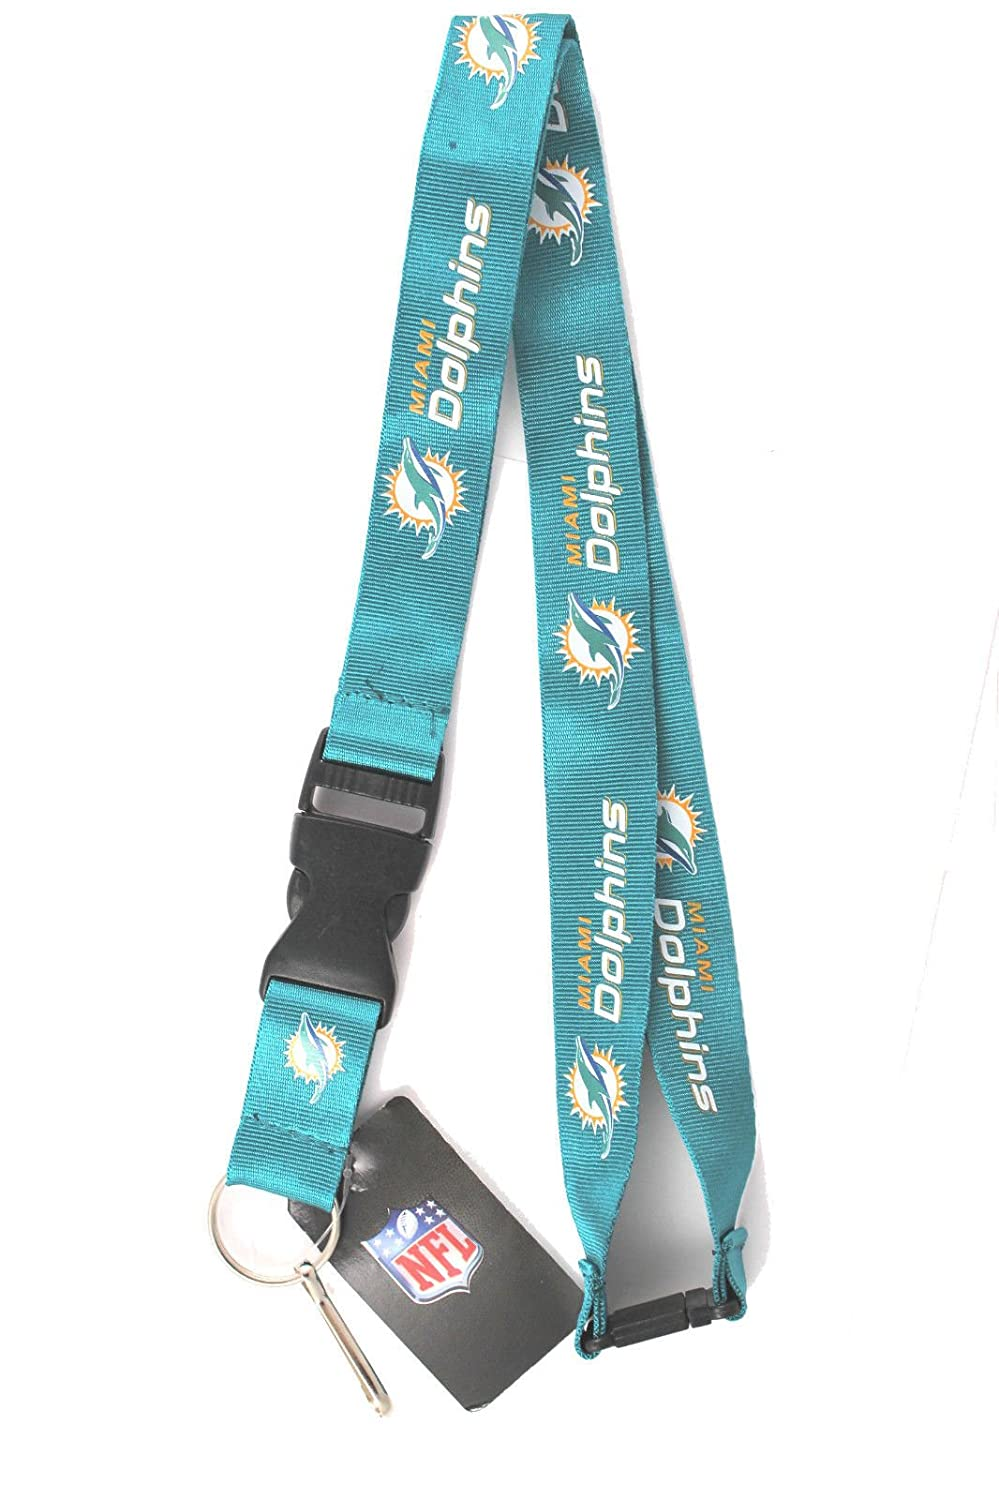 Miami Dolphins Lanyard With Velcro Safety Fastener